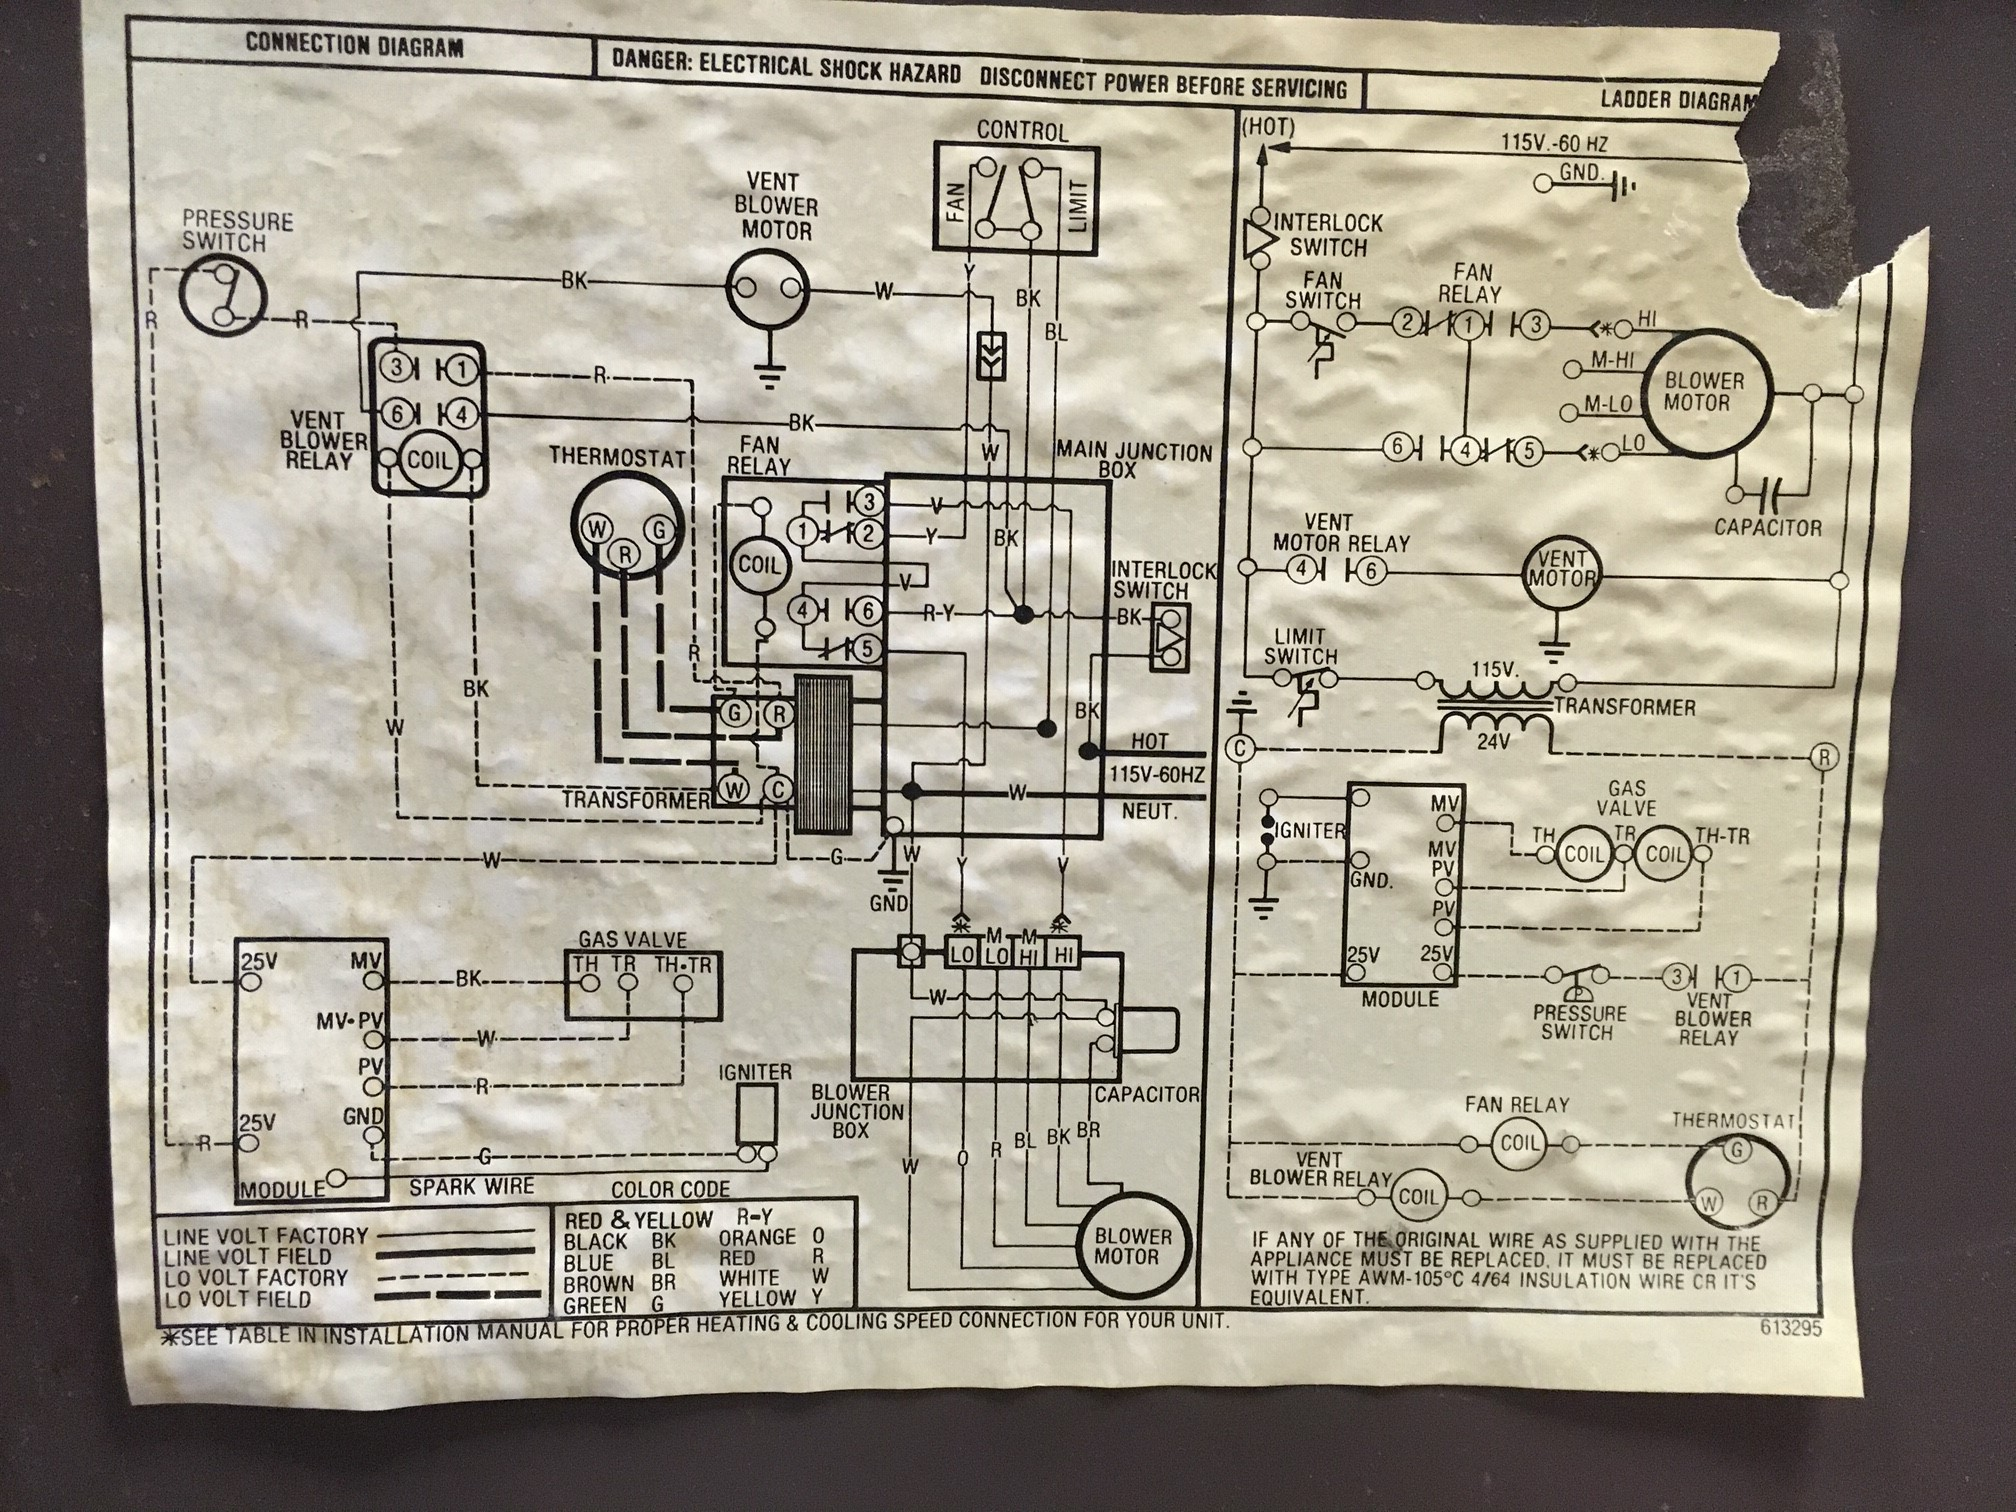 [SCHEMATICS_48IS]  Old Sears Power Miser 80 Furnace Fan Won't Turn On When Set To